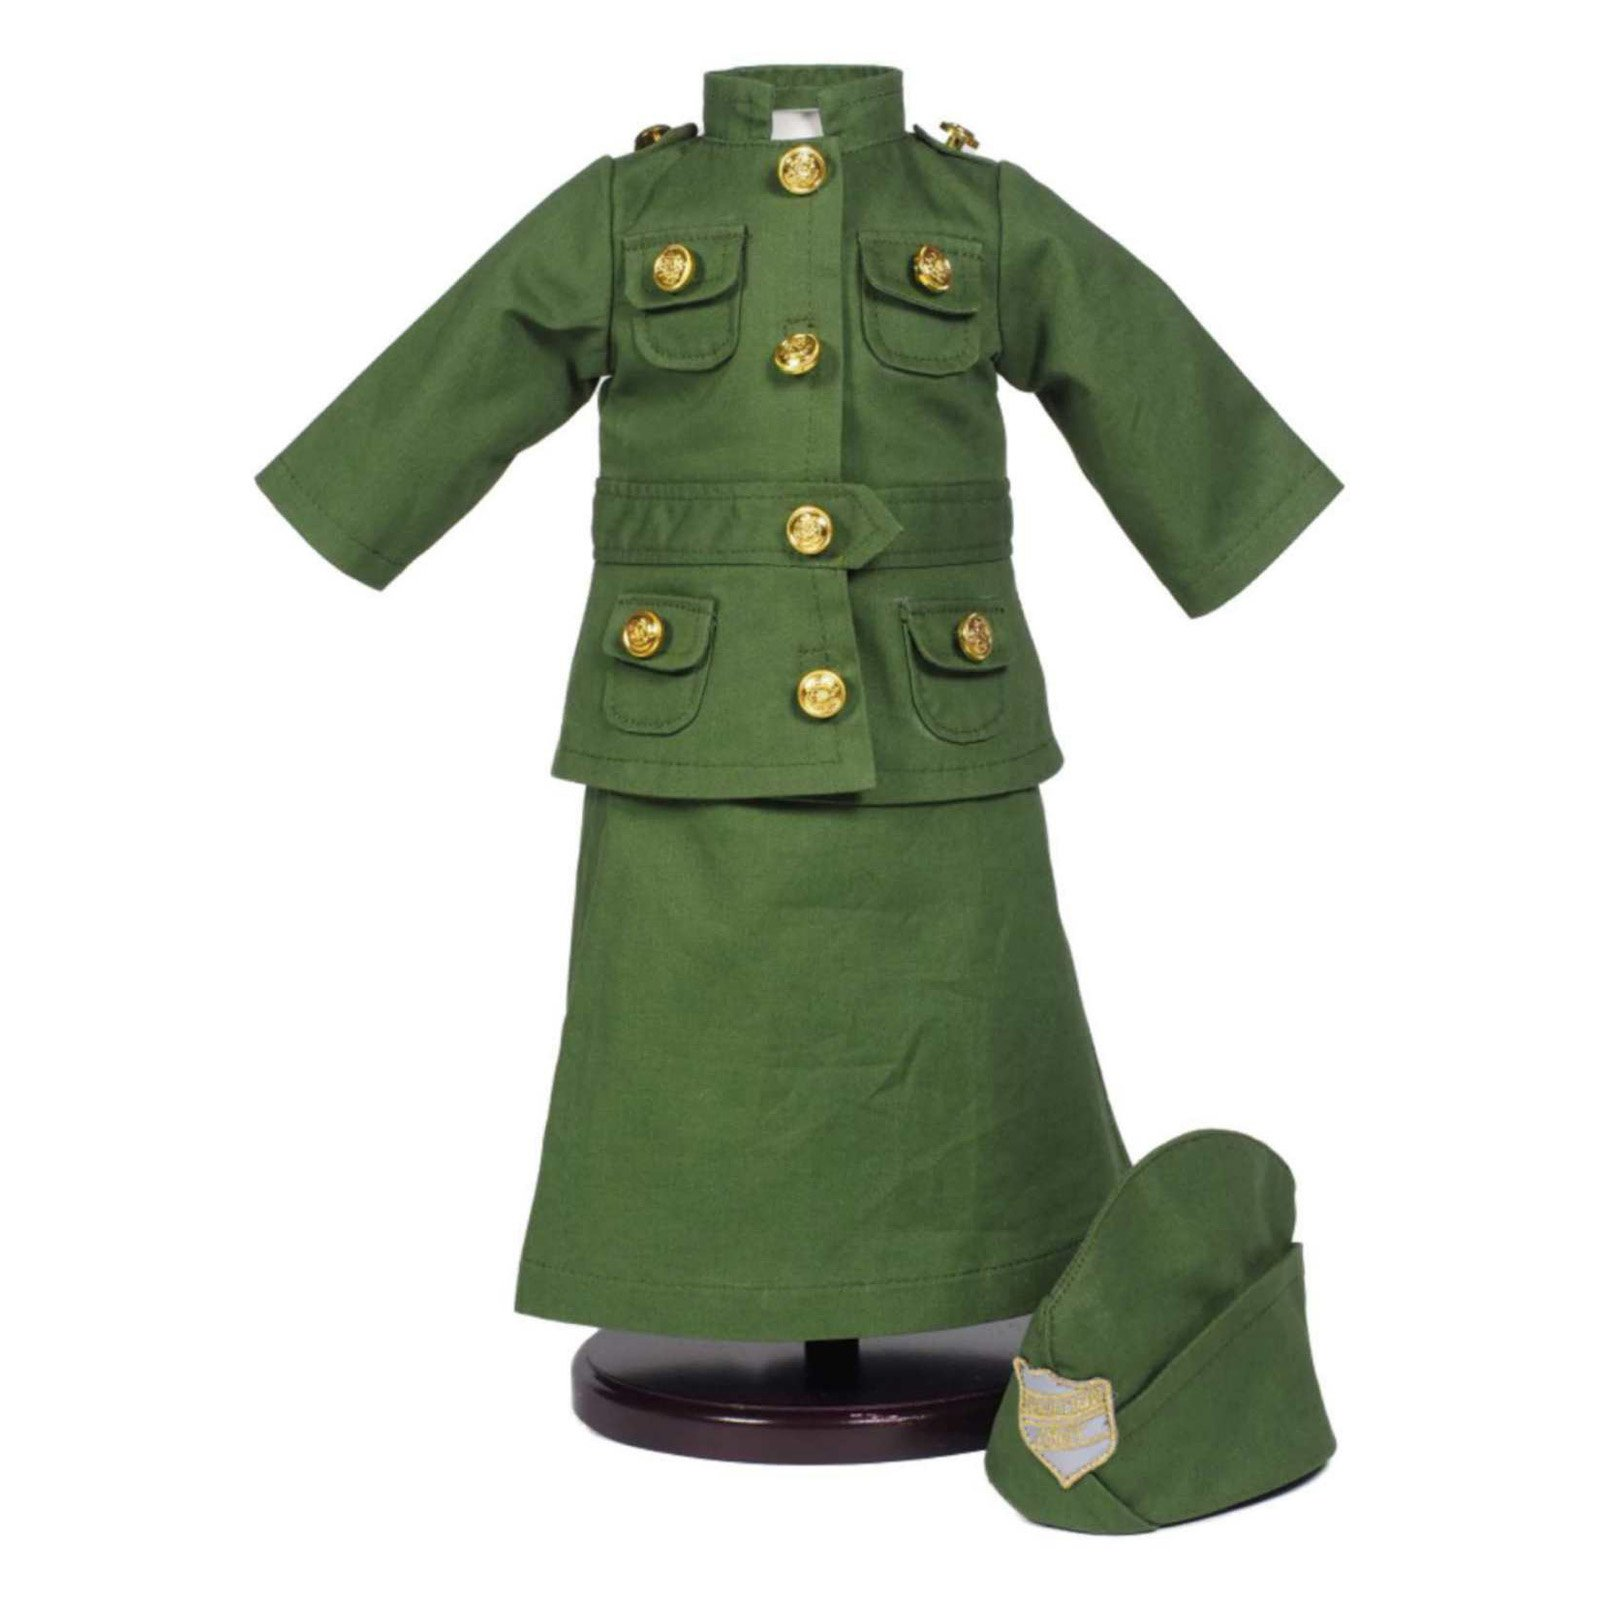 18 Inch Doll Historic Clothes Outfit, Three Piece WWI Salvation Army Uniform